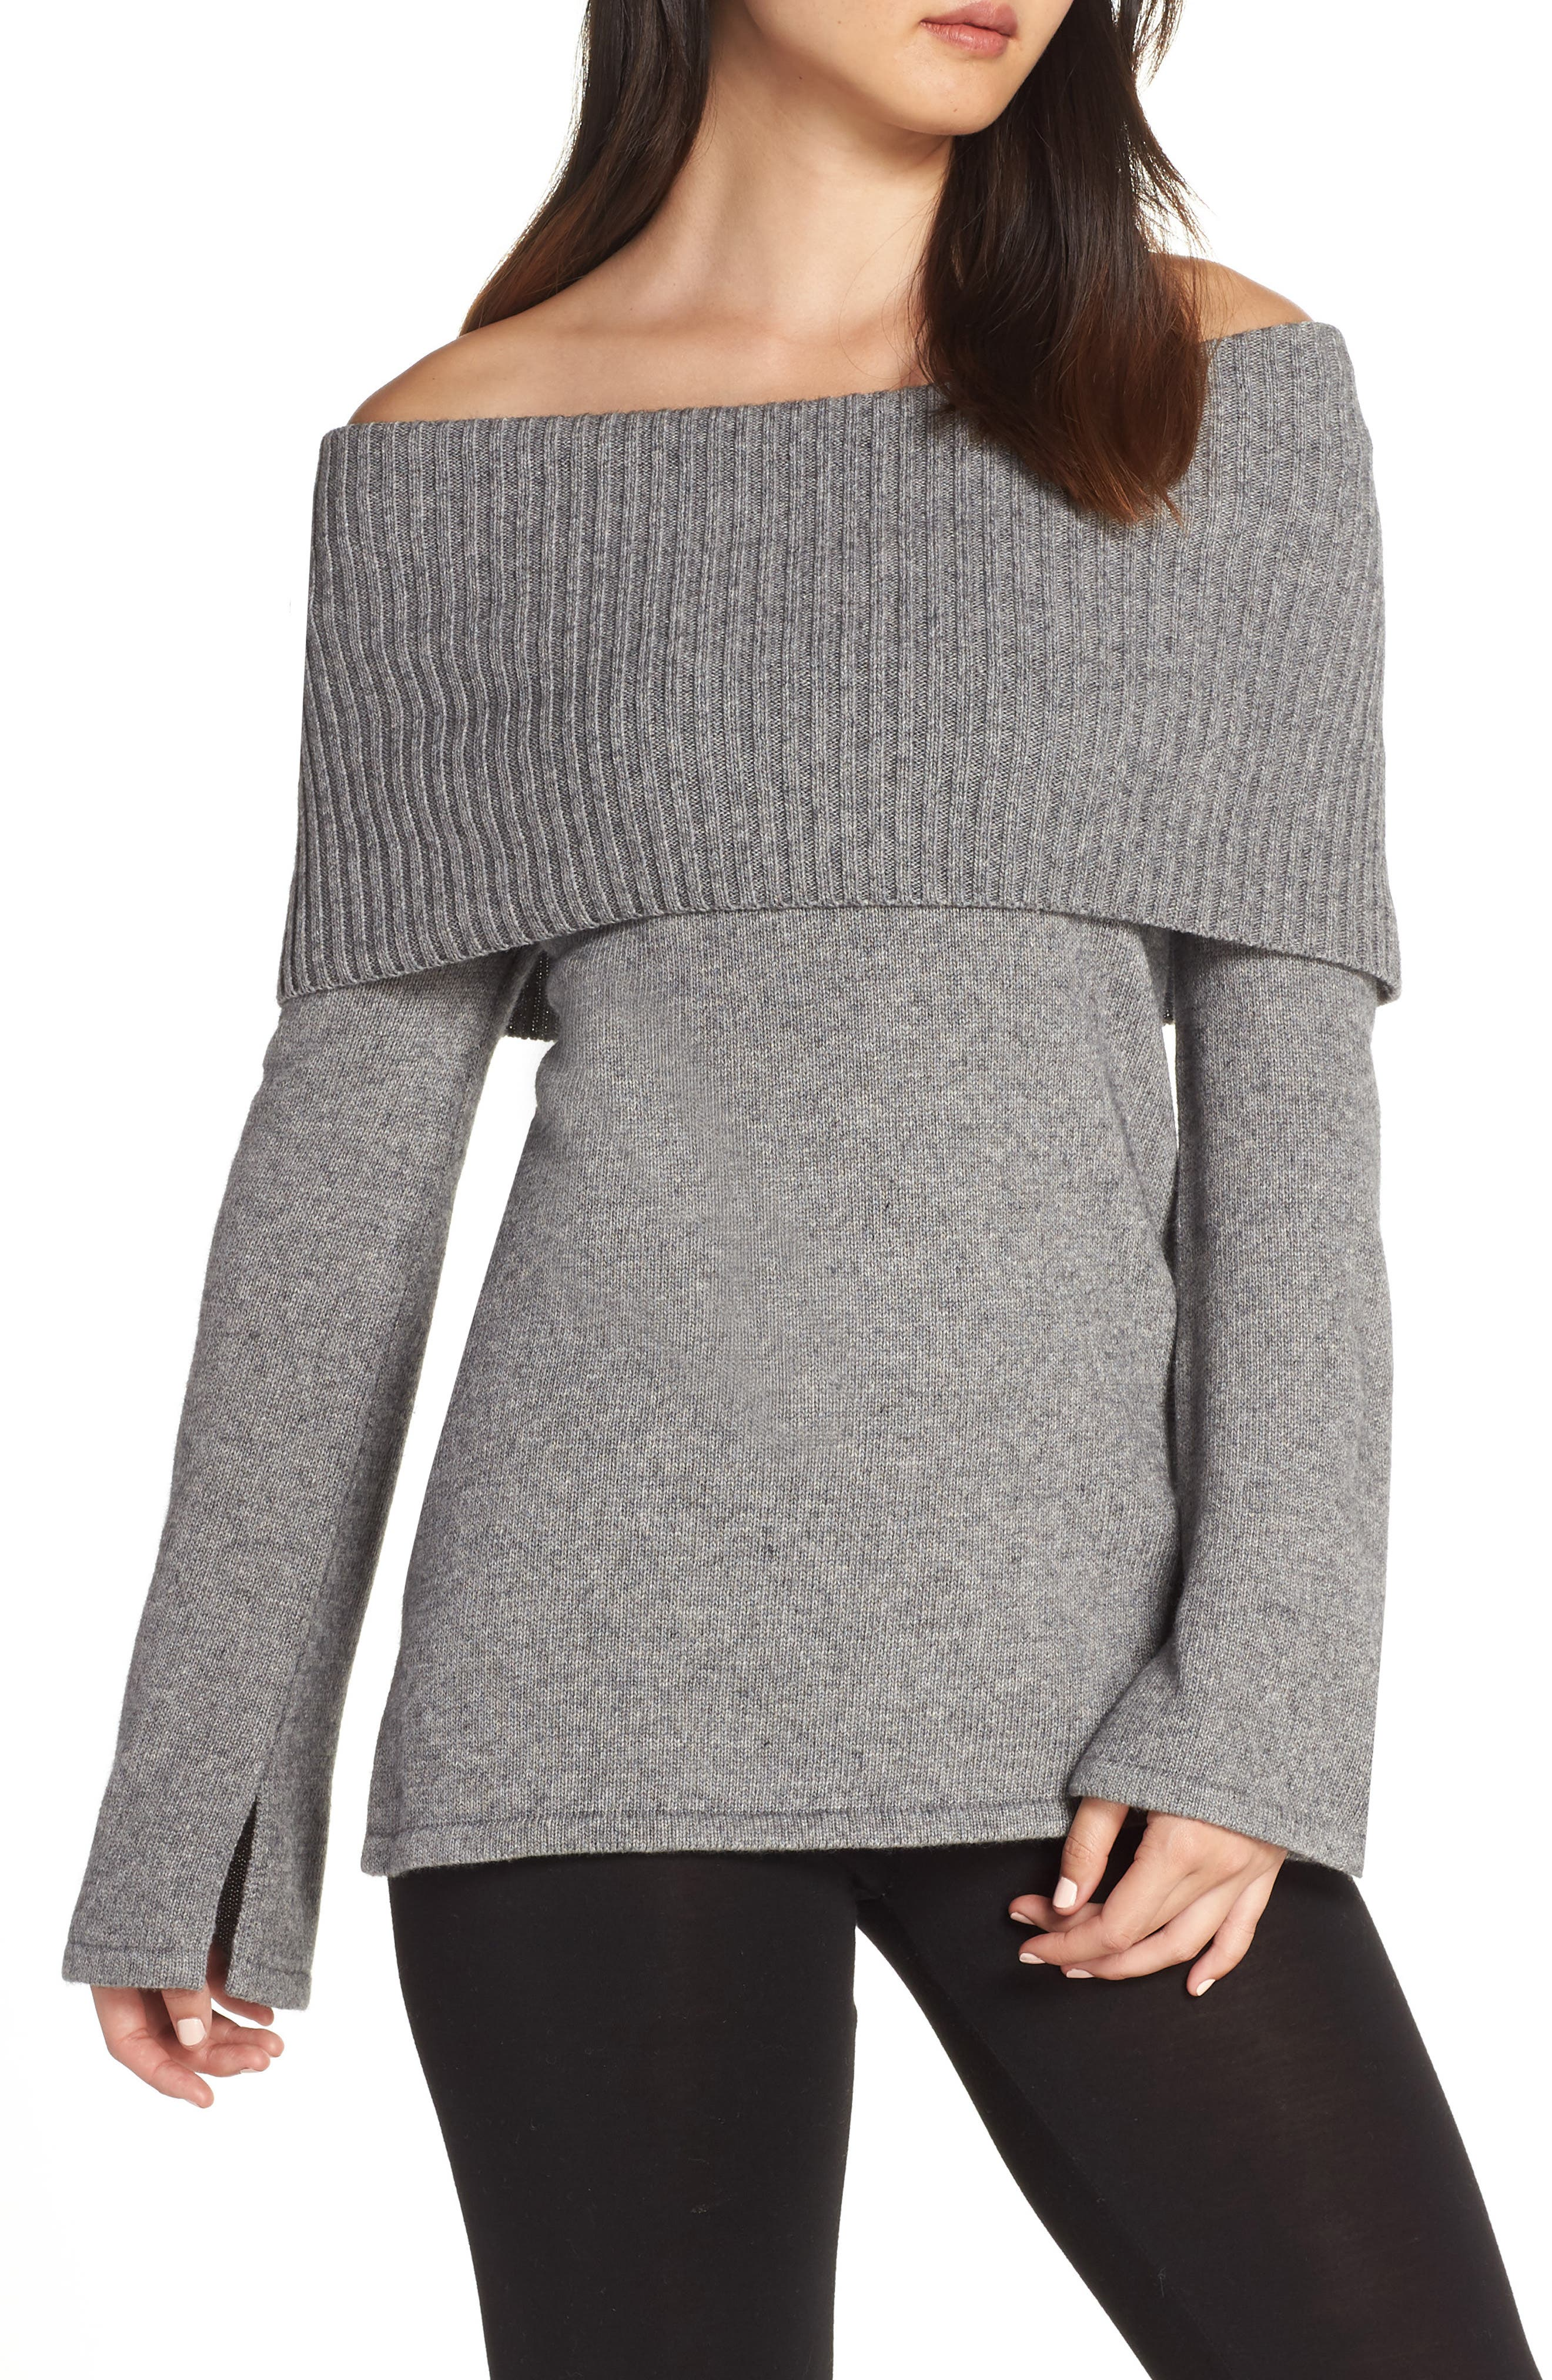 Rhodyn Off The Shoulder Sweater,                             Main thumbnail 1, color,                             GREY HEATHER